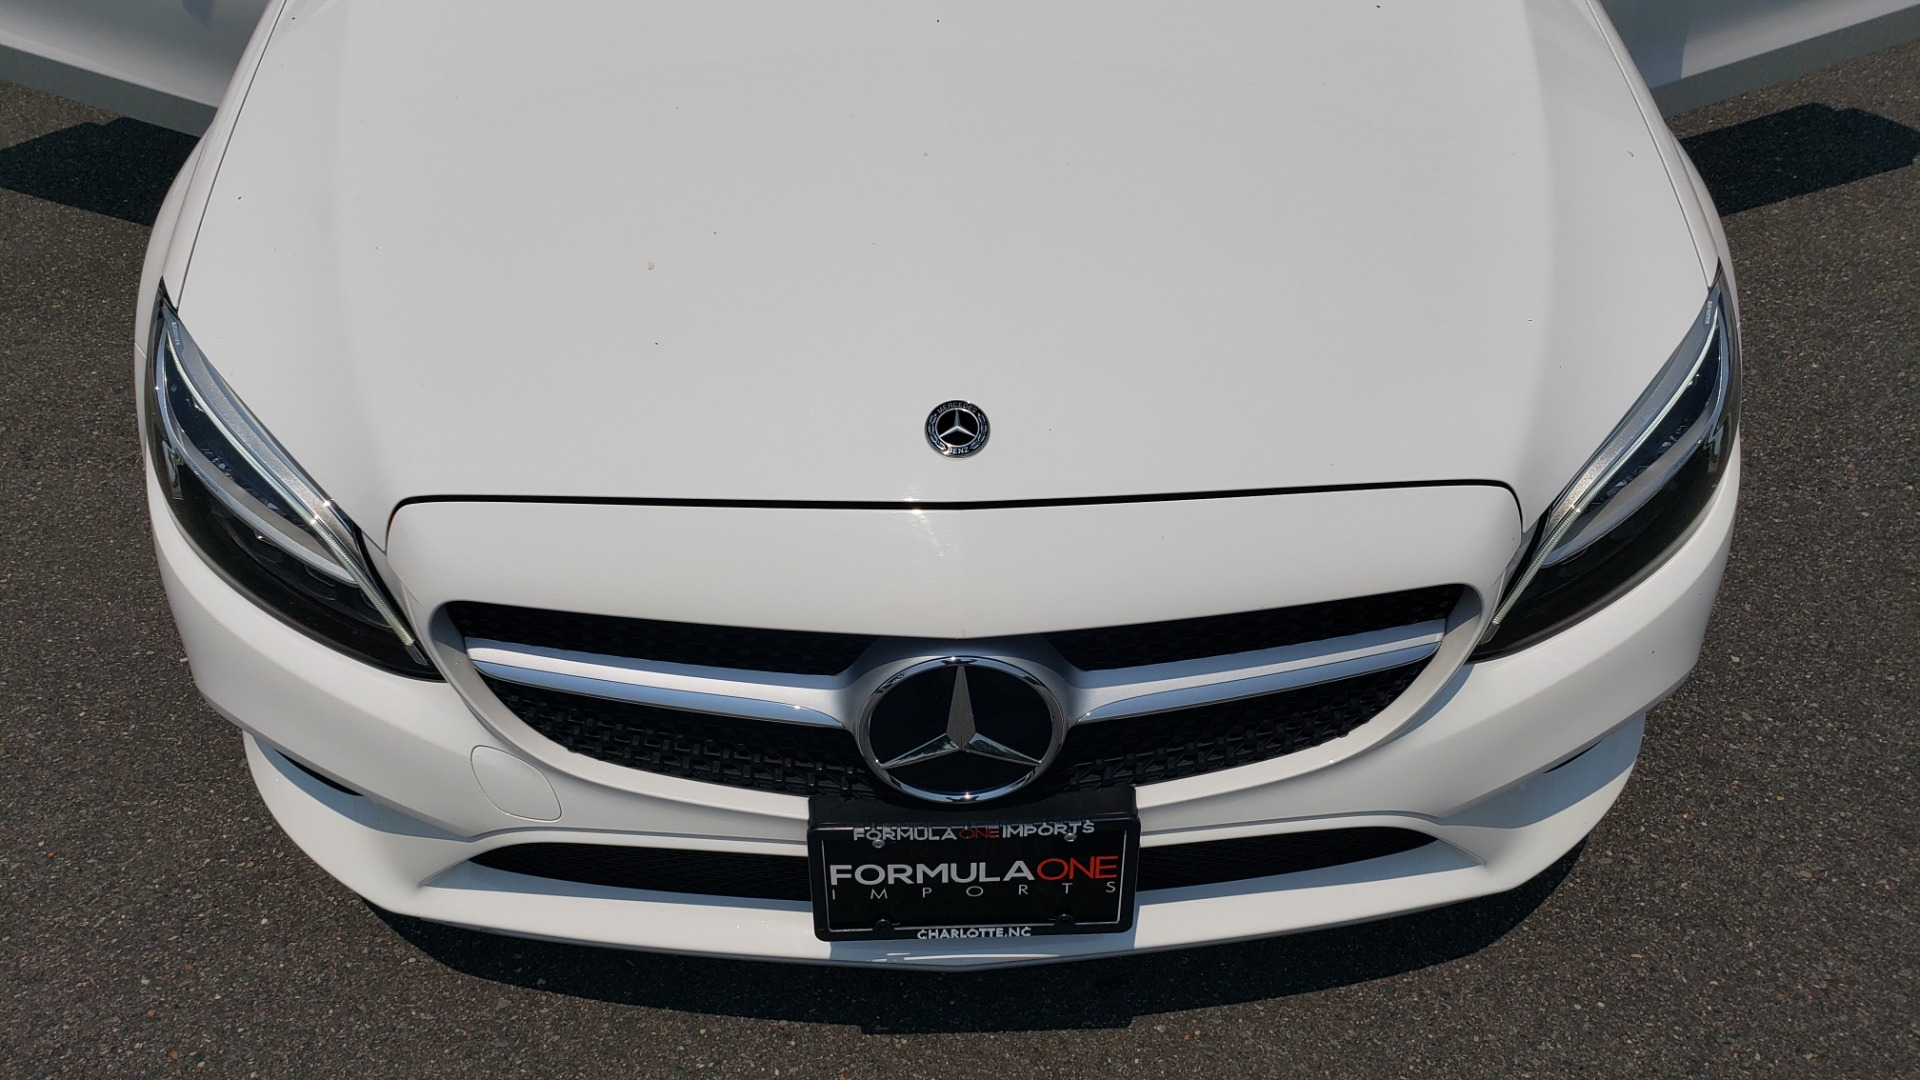 Used 2019 Mercedes-Benz C-CLASS C 300 CABRIOLET 2.0L / AUTO / NAV / HD RADIO / REARVIEW for sale $46,995 at Formula Imports in Charlotte NC 28227 27